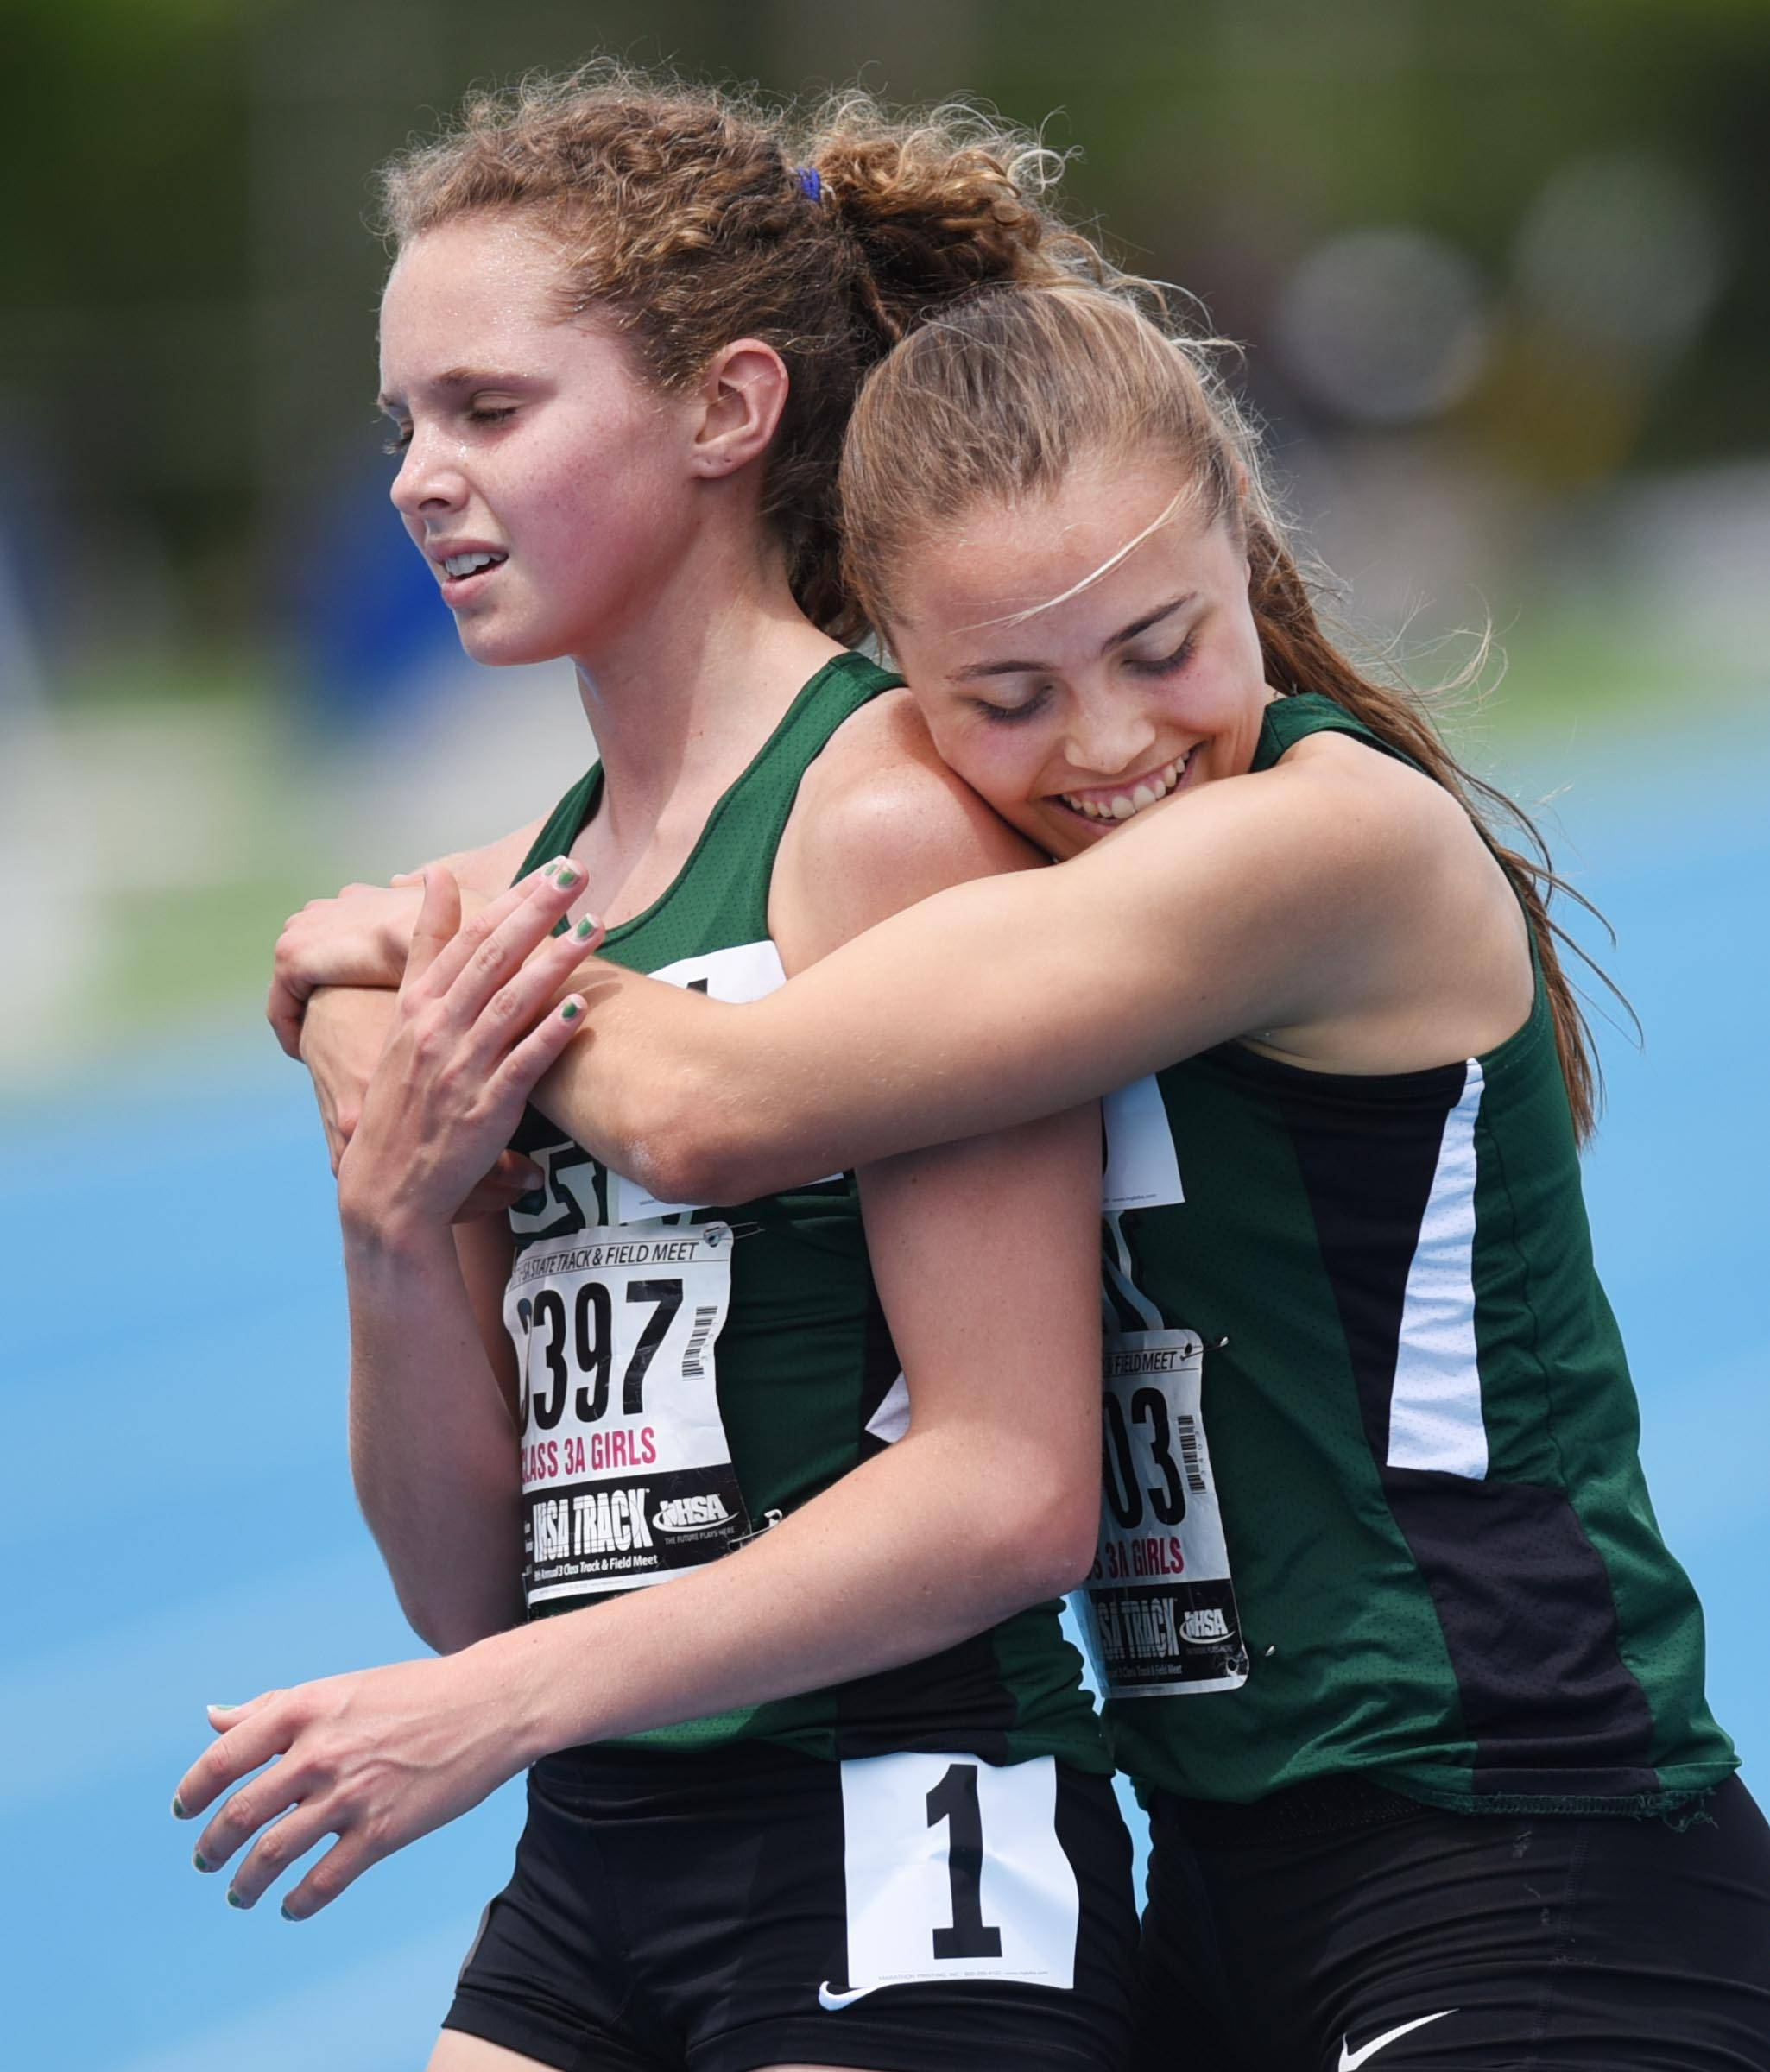 Glenbard West's Lindsey Payne hugs teammate Katelynne Hart after they placed second and first, respectively, in the Class 3A 3200-Meter Run at the state girls track and field meet finals on Saturday at Eastern Illinois University in Charleston.